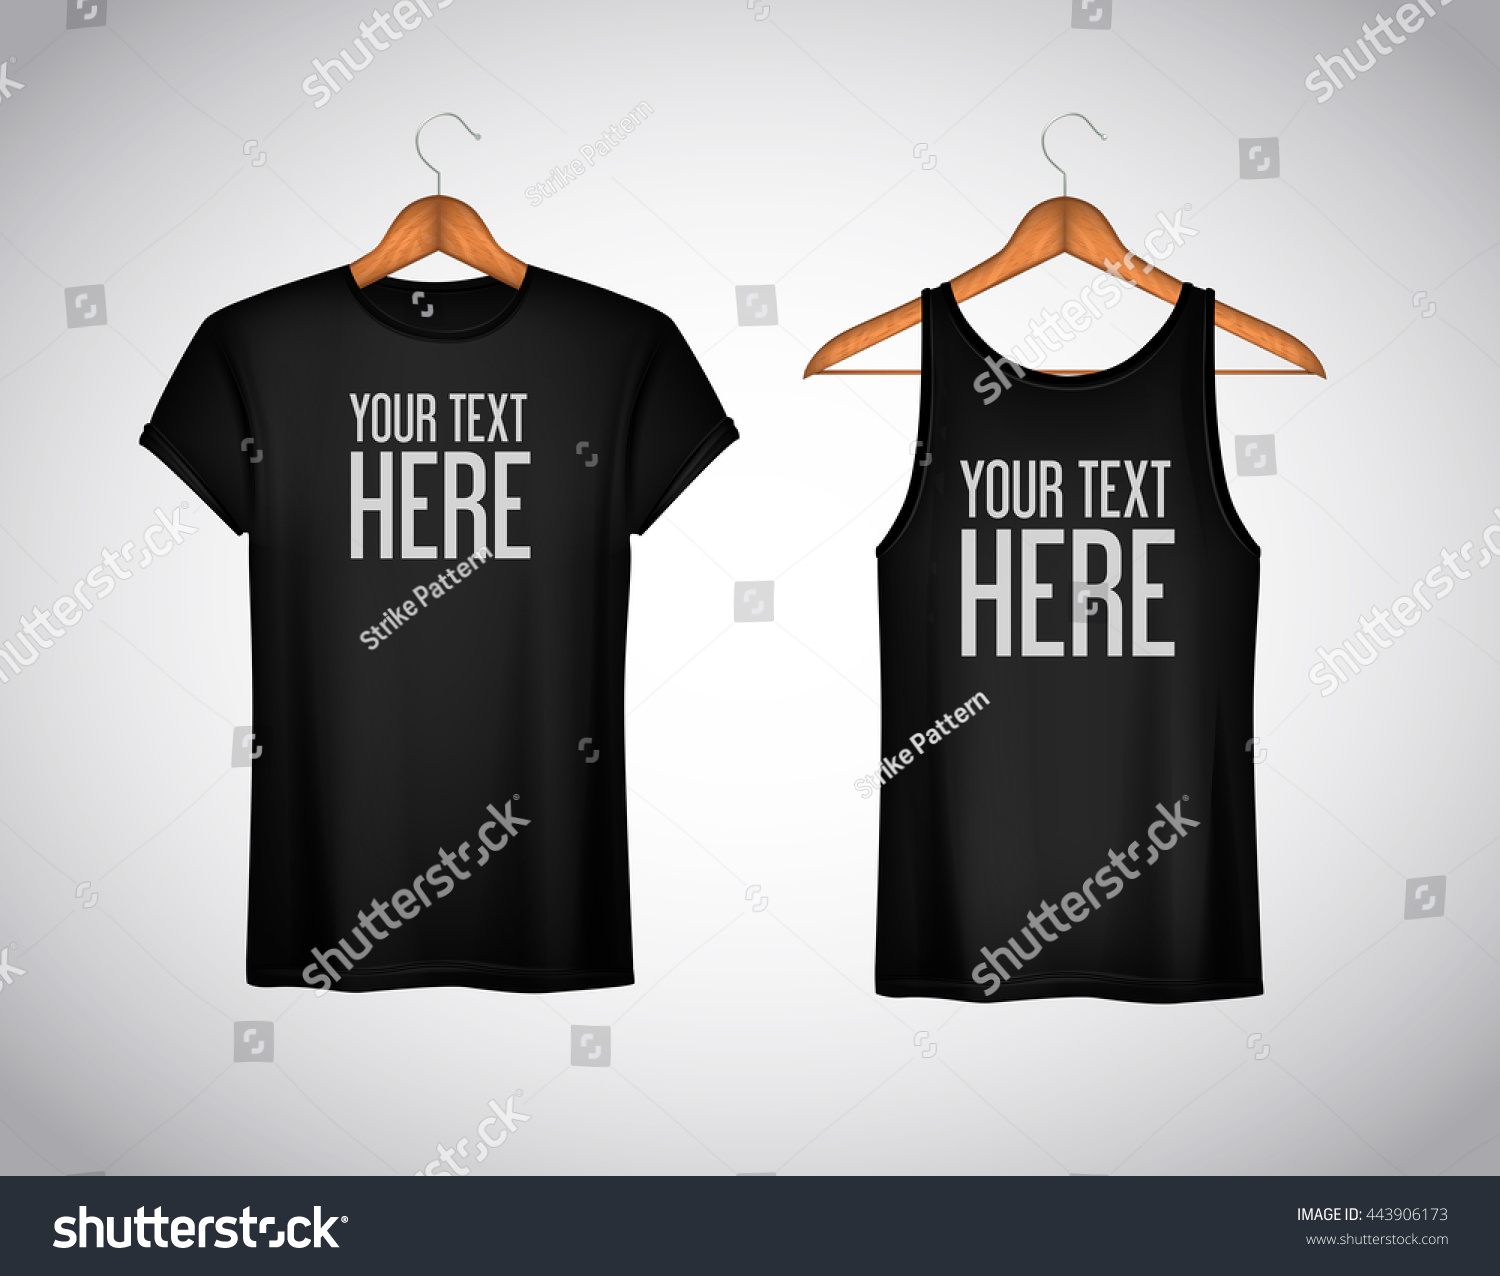 T shirt white brand - Men Black Tank Top And T Shirt Realistic Mockup Whit Brand Text For Advertising